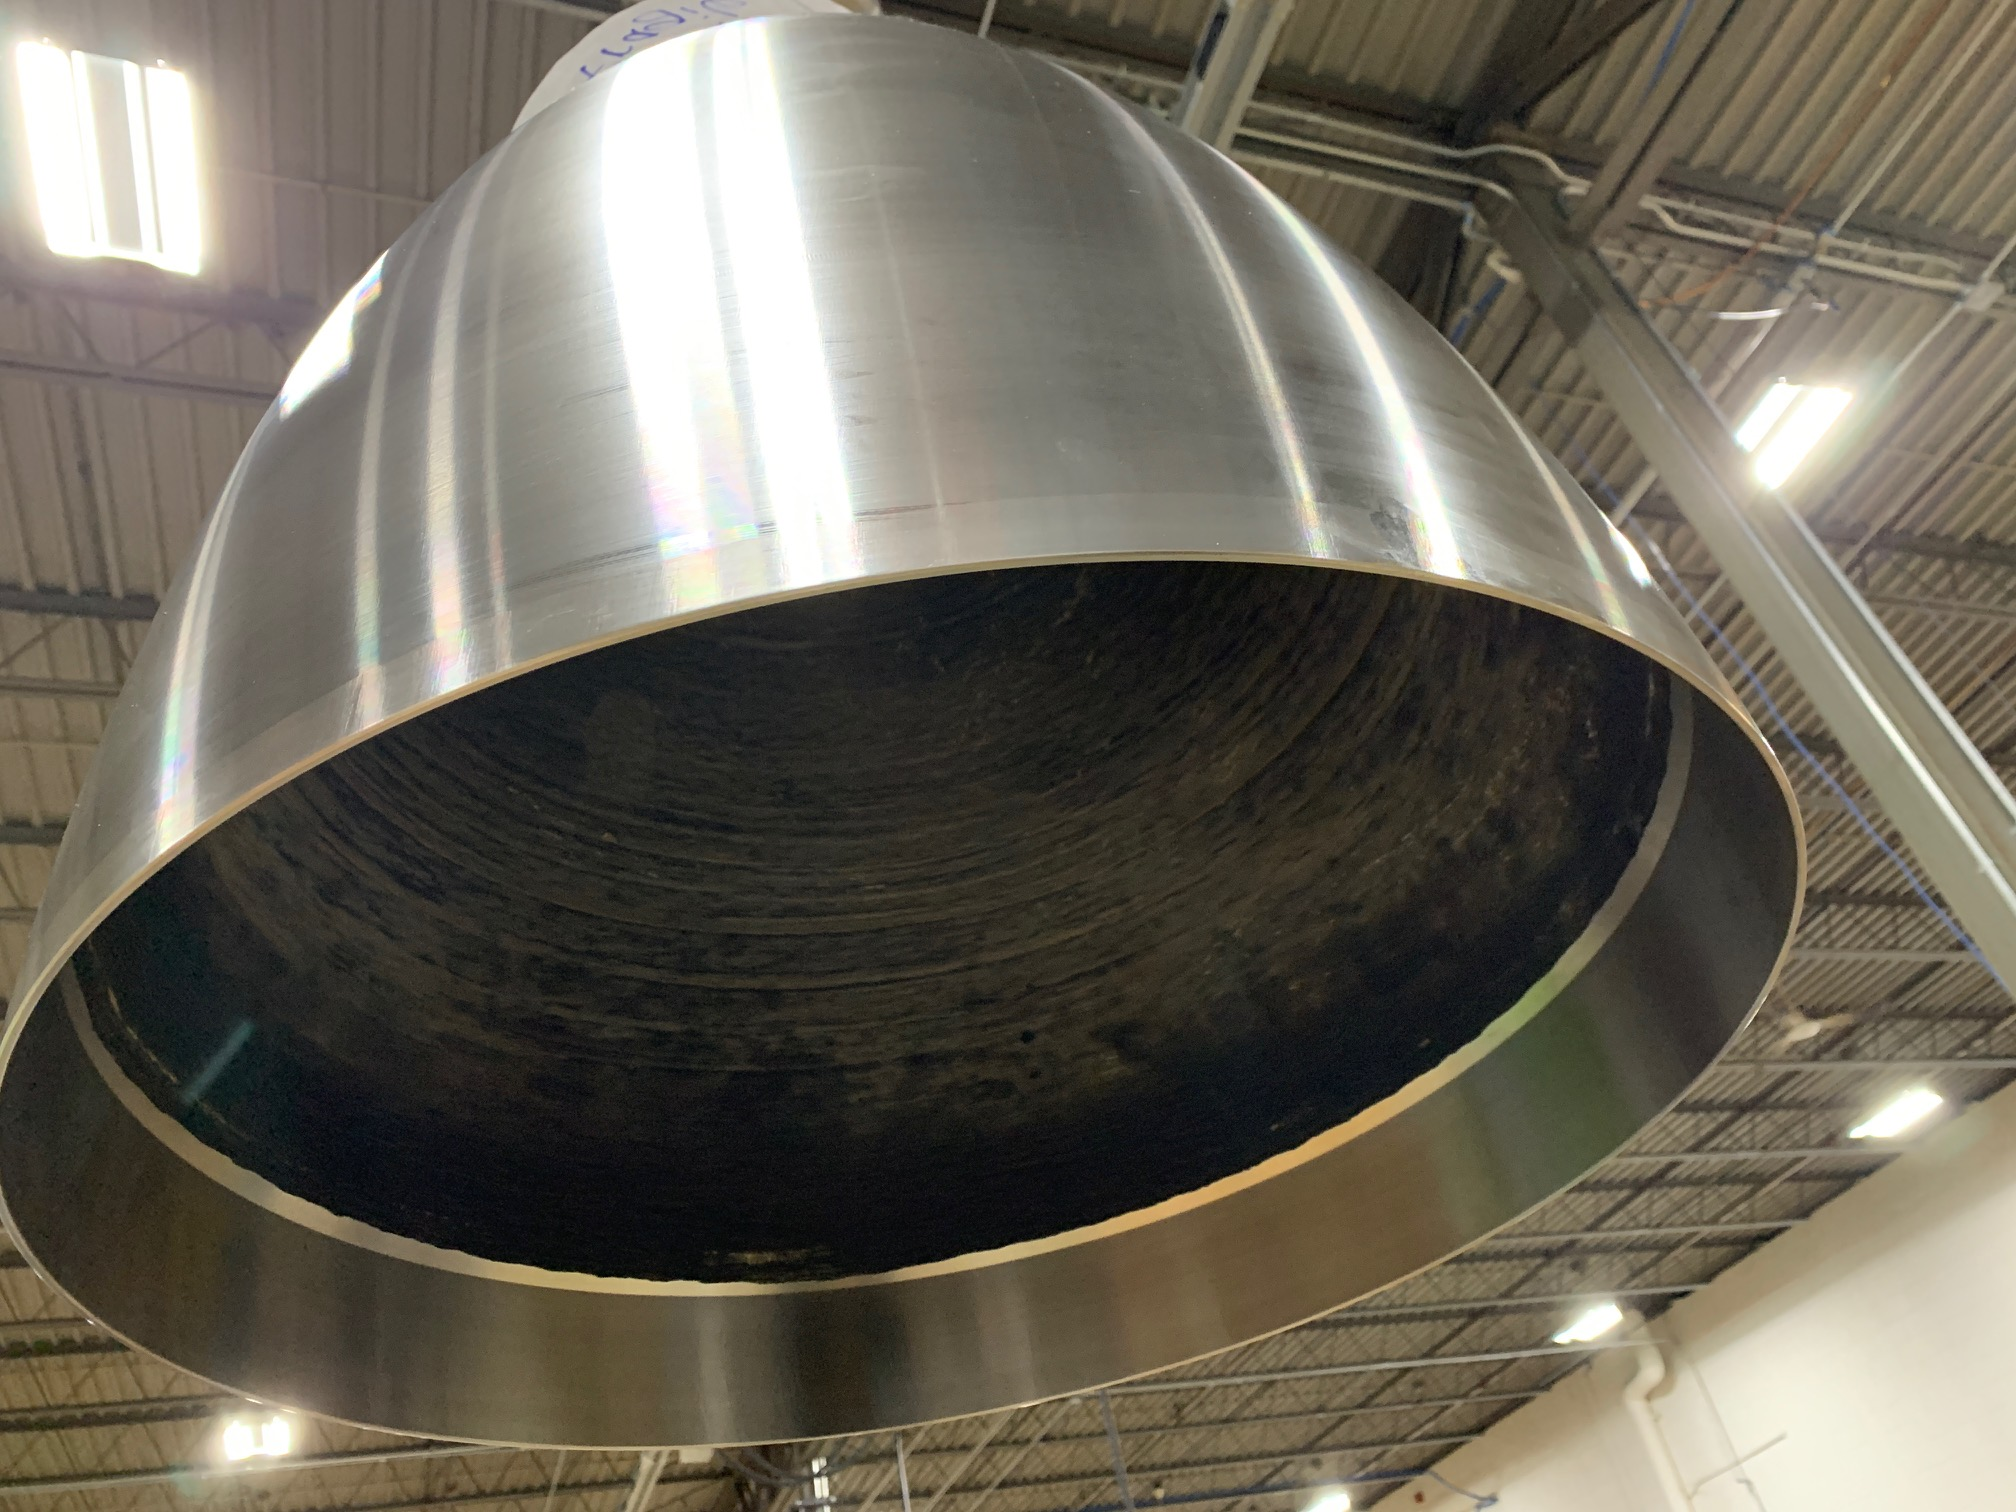 ADDere's full sized rocket thrust chamber assembly. Photo via ADDere.